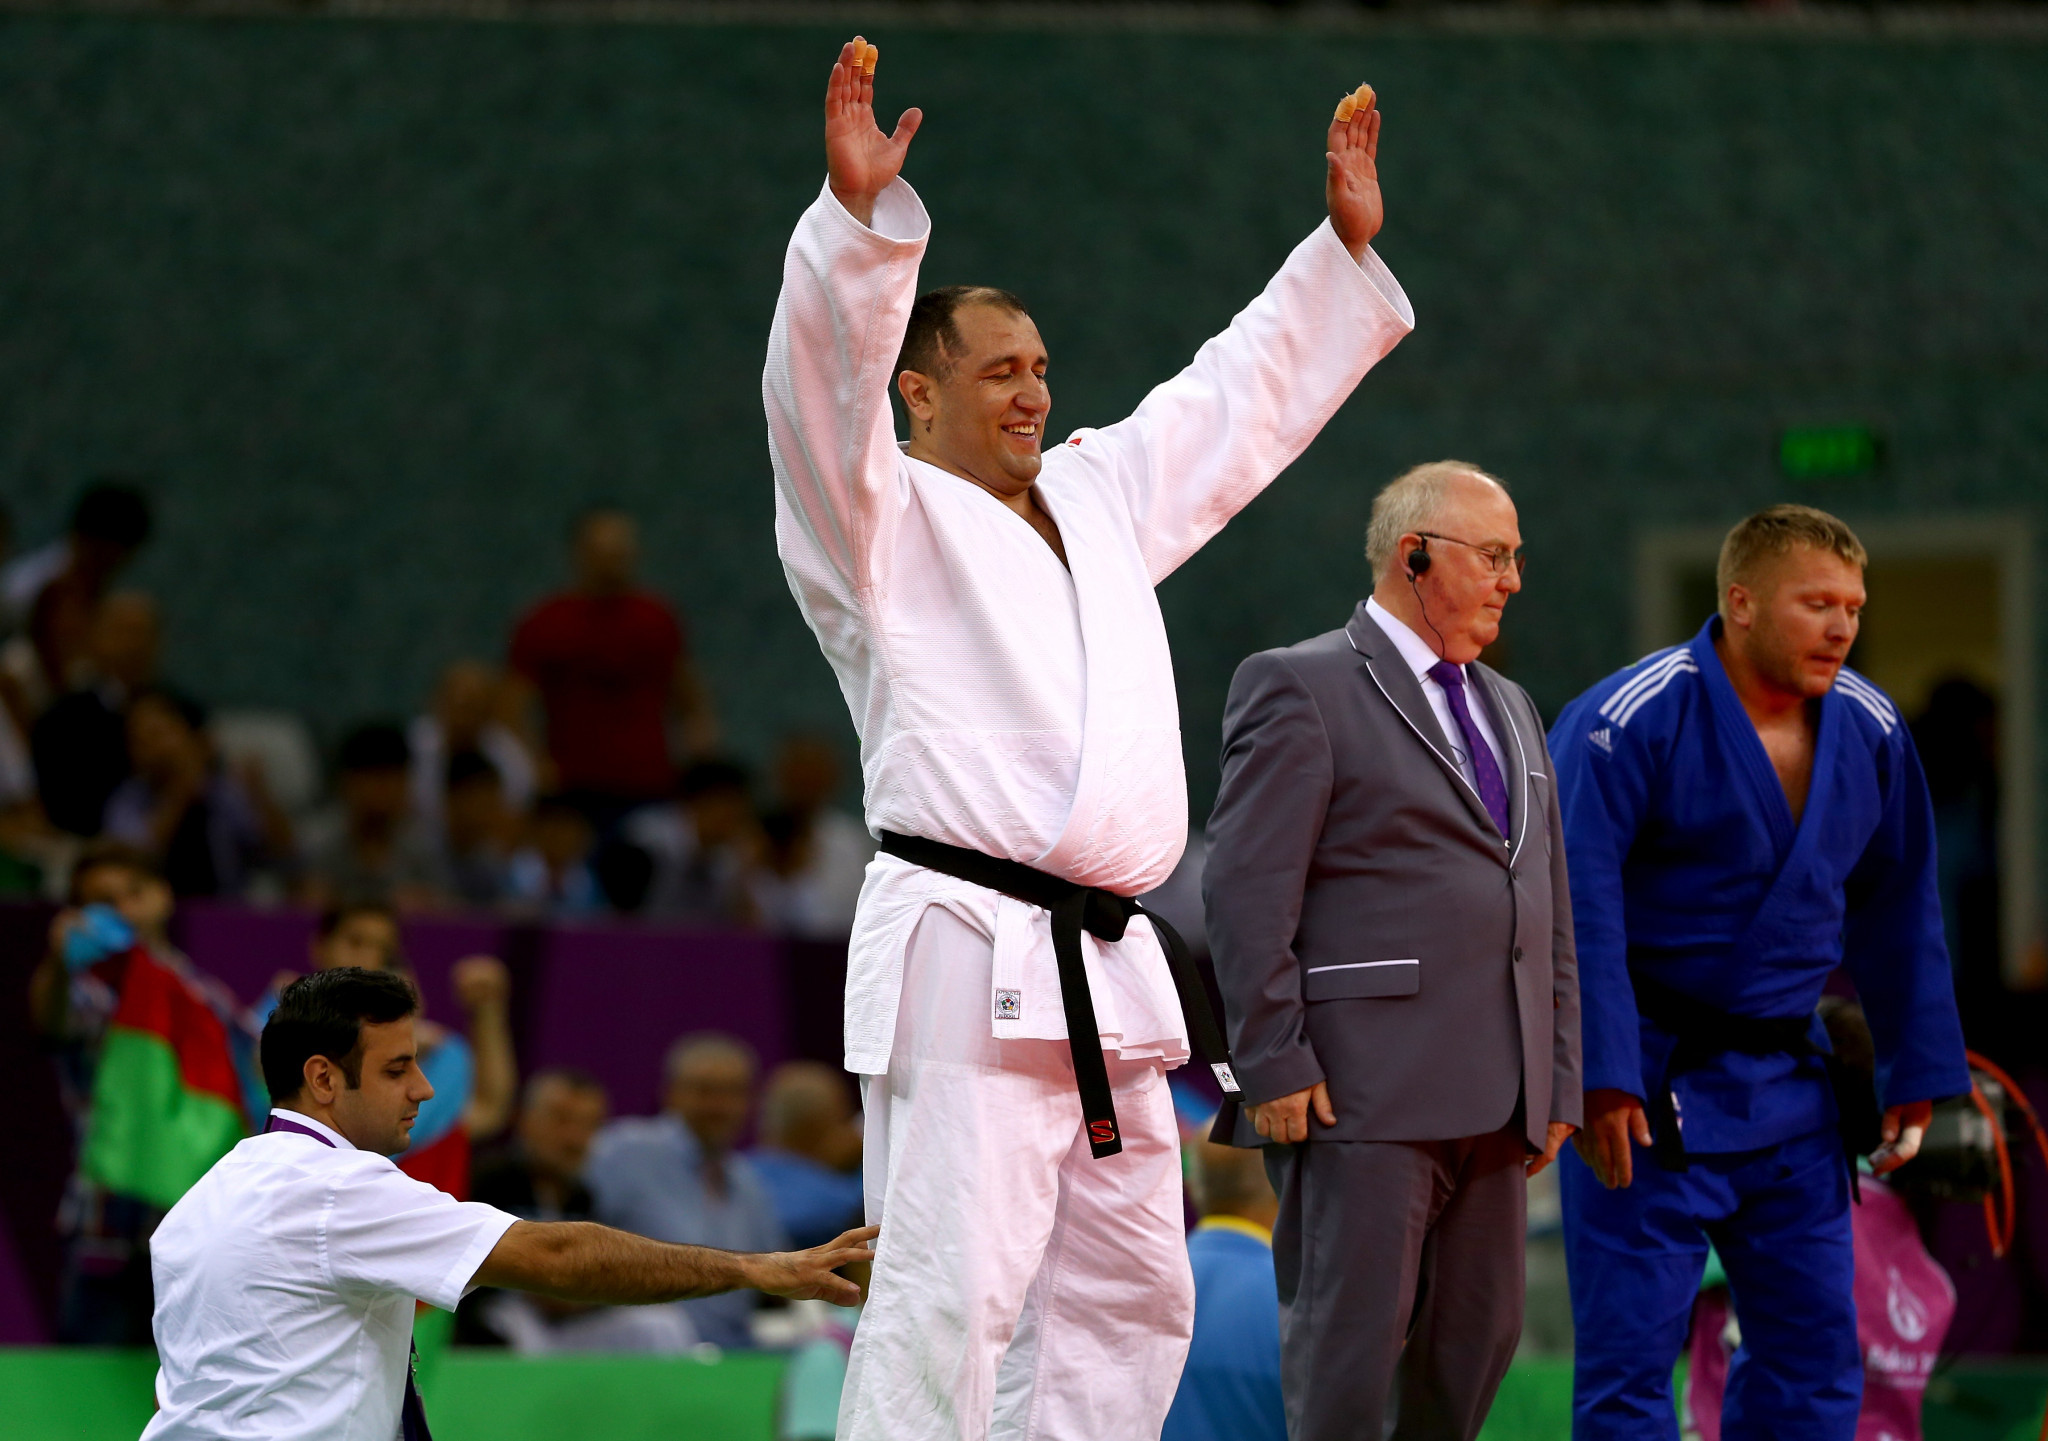 Azerbaijan's Ilham Zakiyev is a member of the International Judo Federation's Hall of Fame and looks to qualify for his fifth Paralympic Games at the IBSA Paralympic qualification on offer at IBSA Judo World Championships in Portugal ©Getty Images